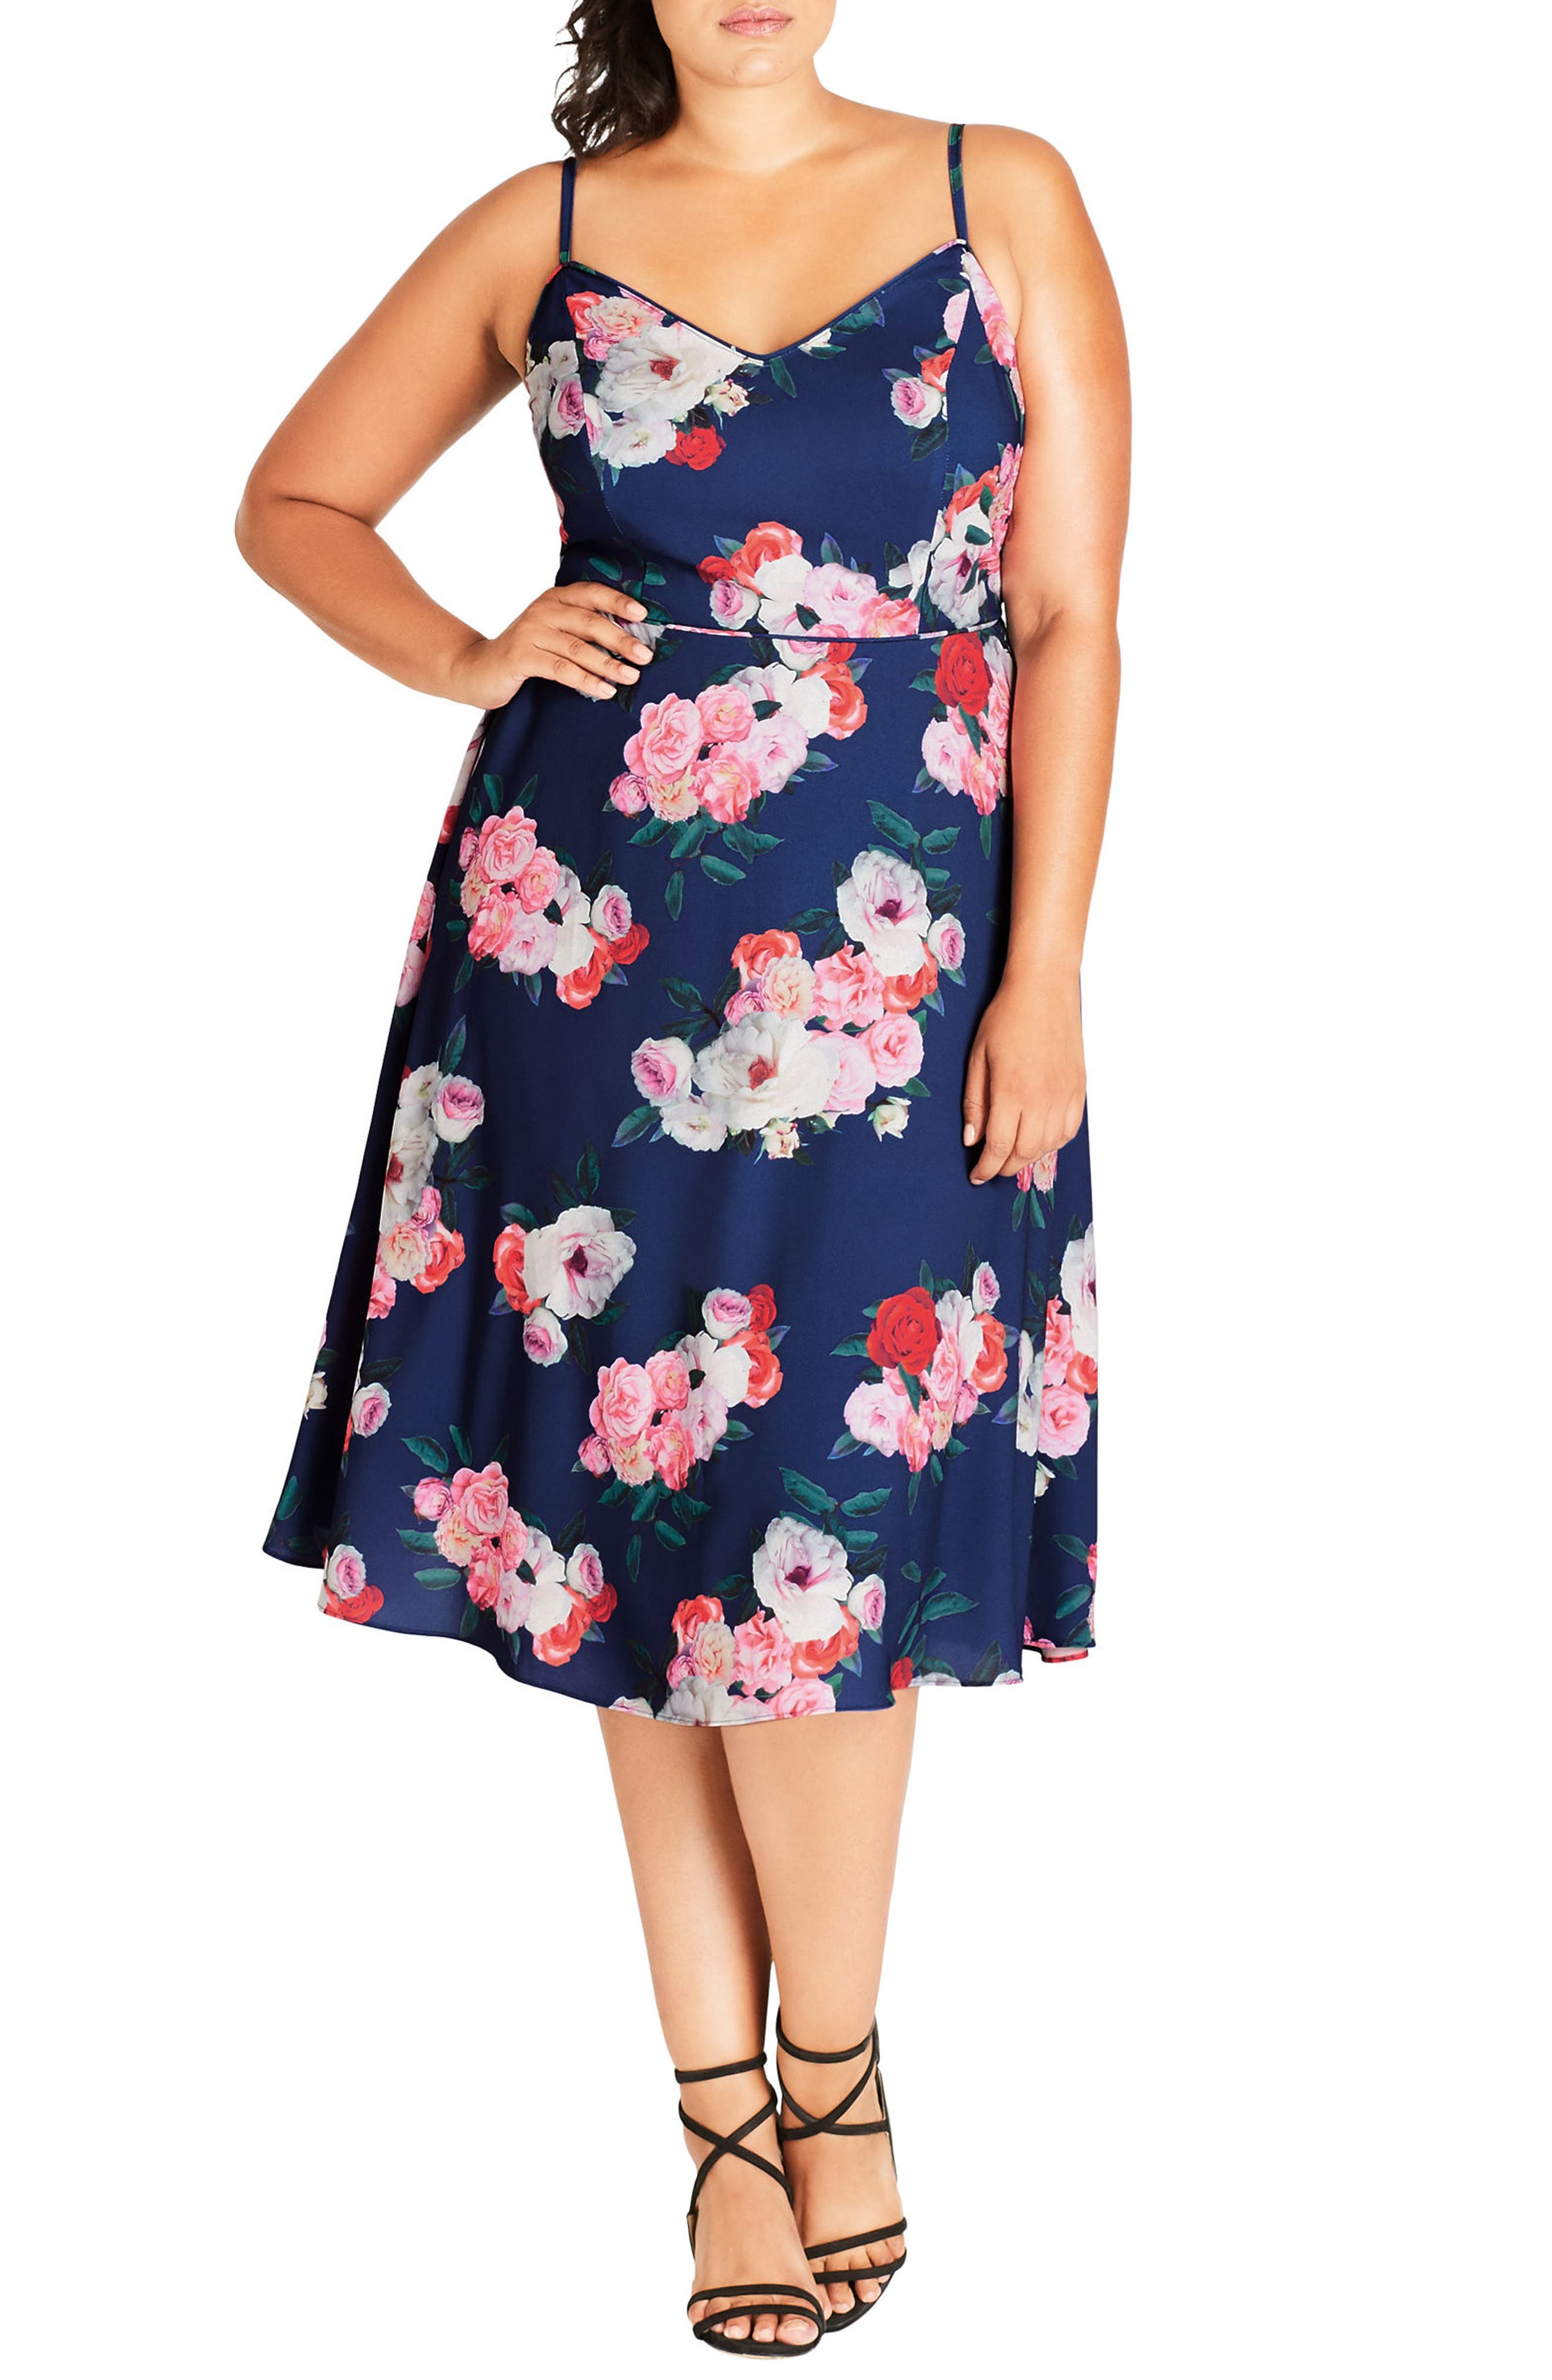 Main Image - City Chic Summer Fling Floral Print Midi Dress (Plus Size)